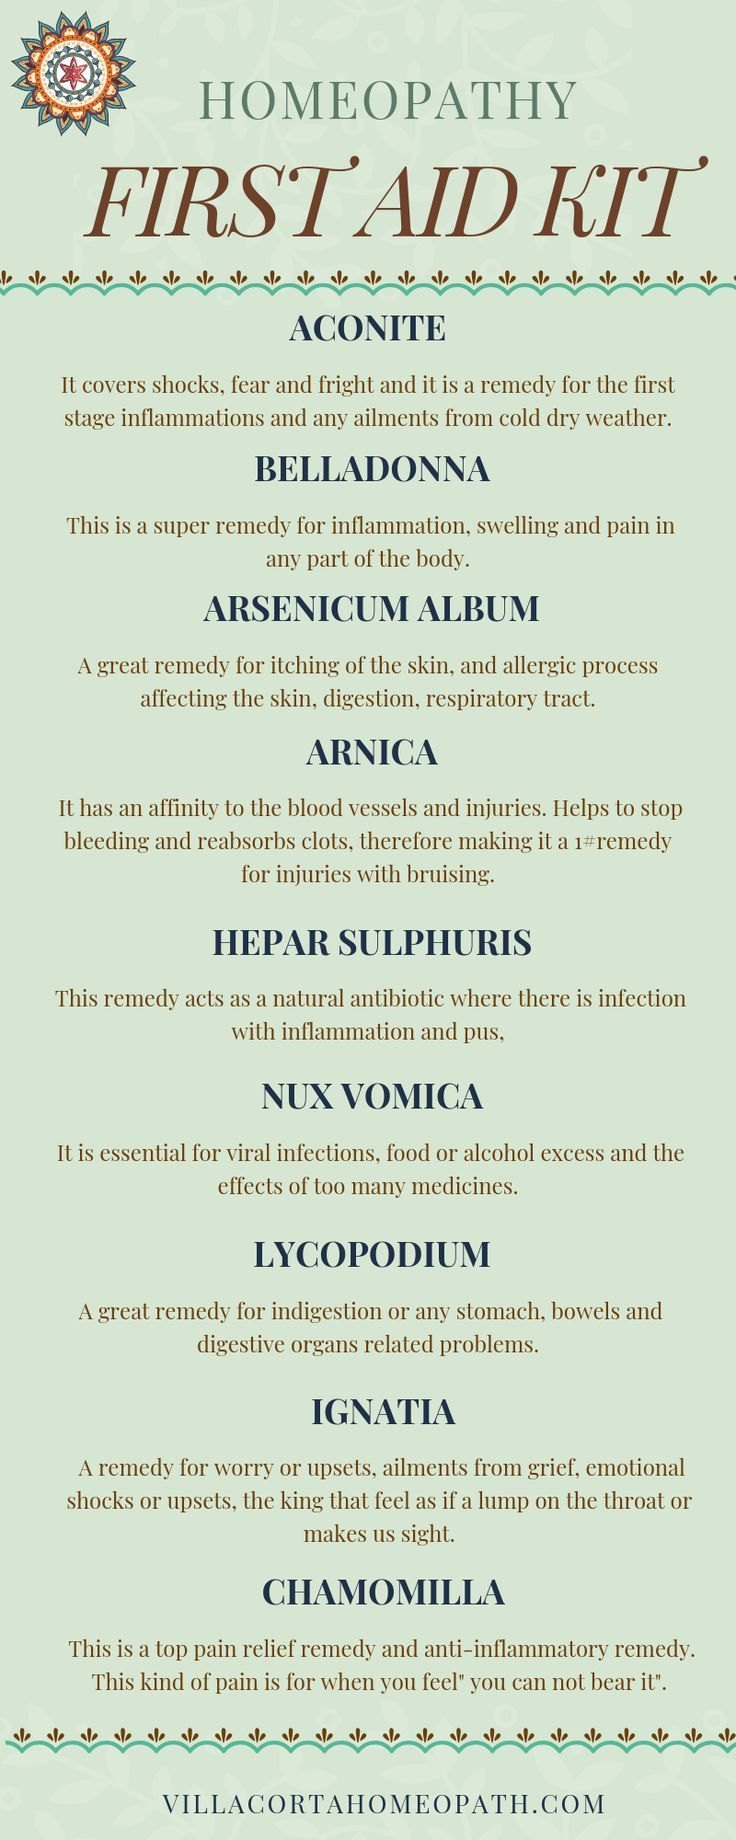 10 Most Important Homeopathic Remedies for your First Aid Kit